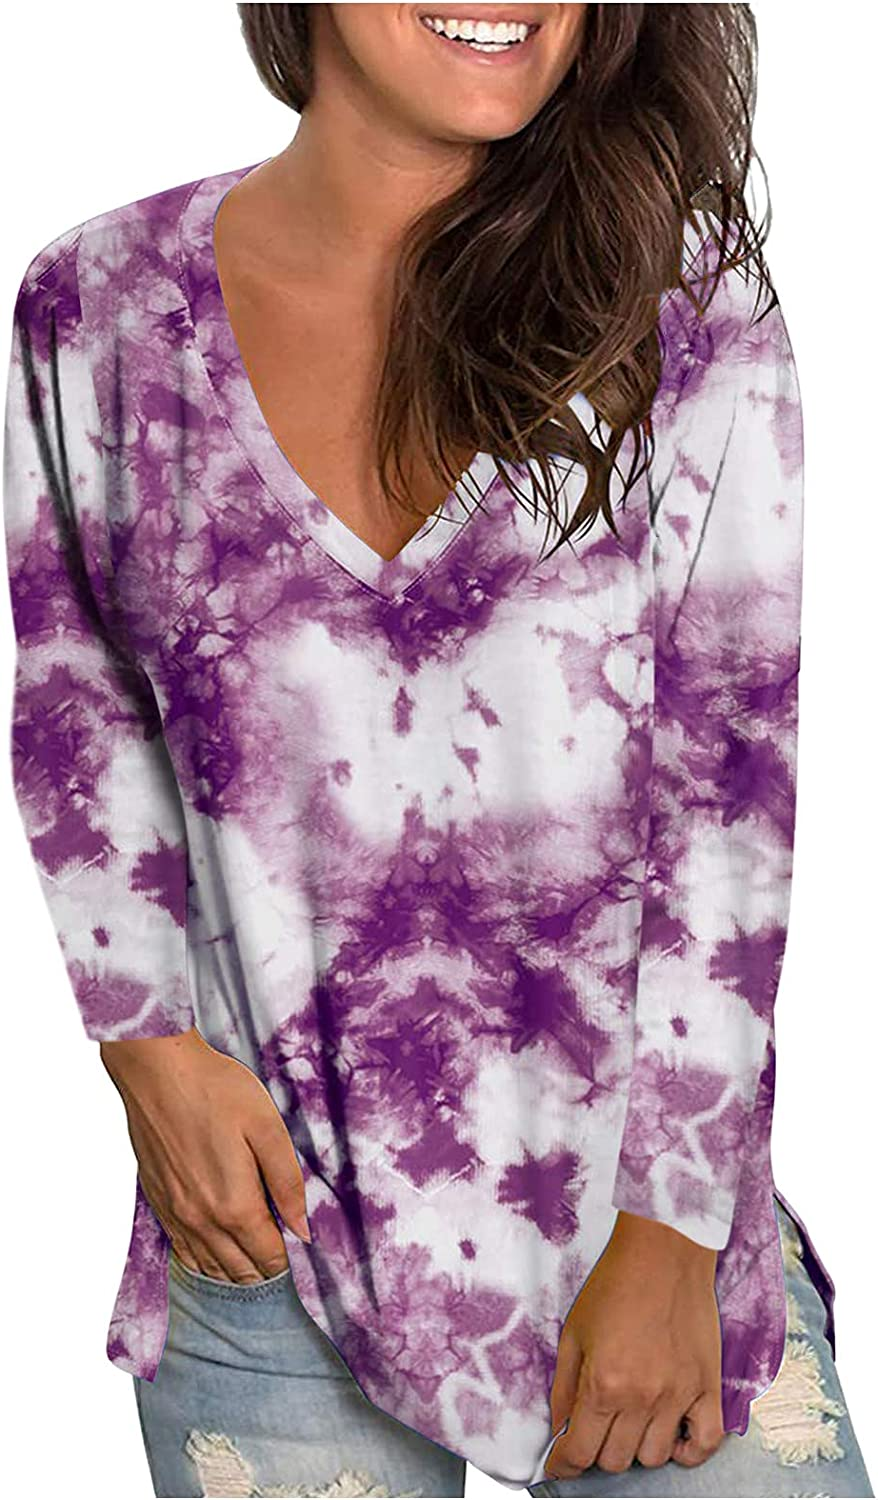 FABIURT Long Sleeve Shirts Women Casual, V Neck Floral Print Tunic Tops Loose Trendy Plus Pullover Shirt Workout Blouses